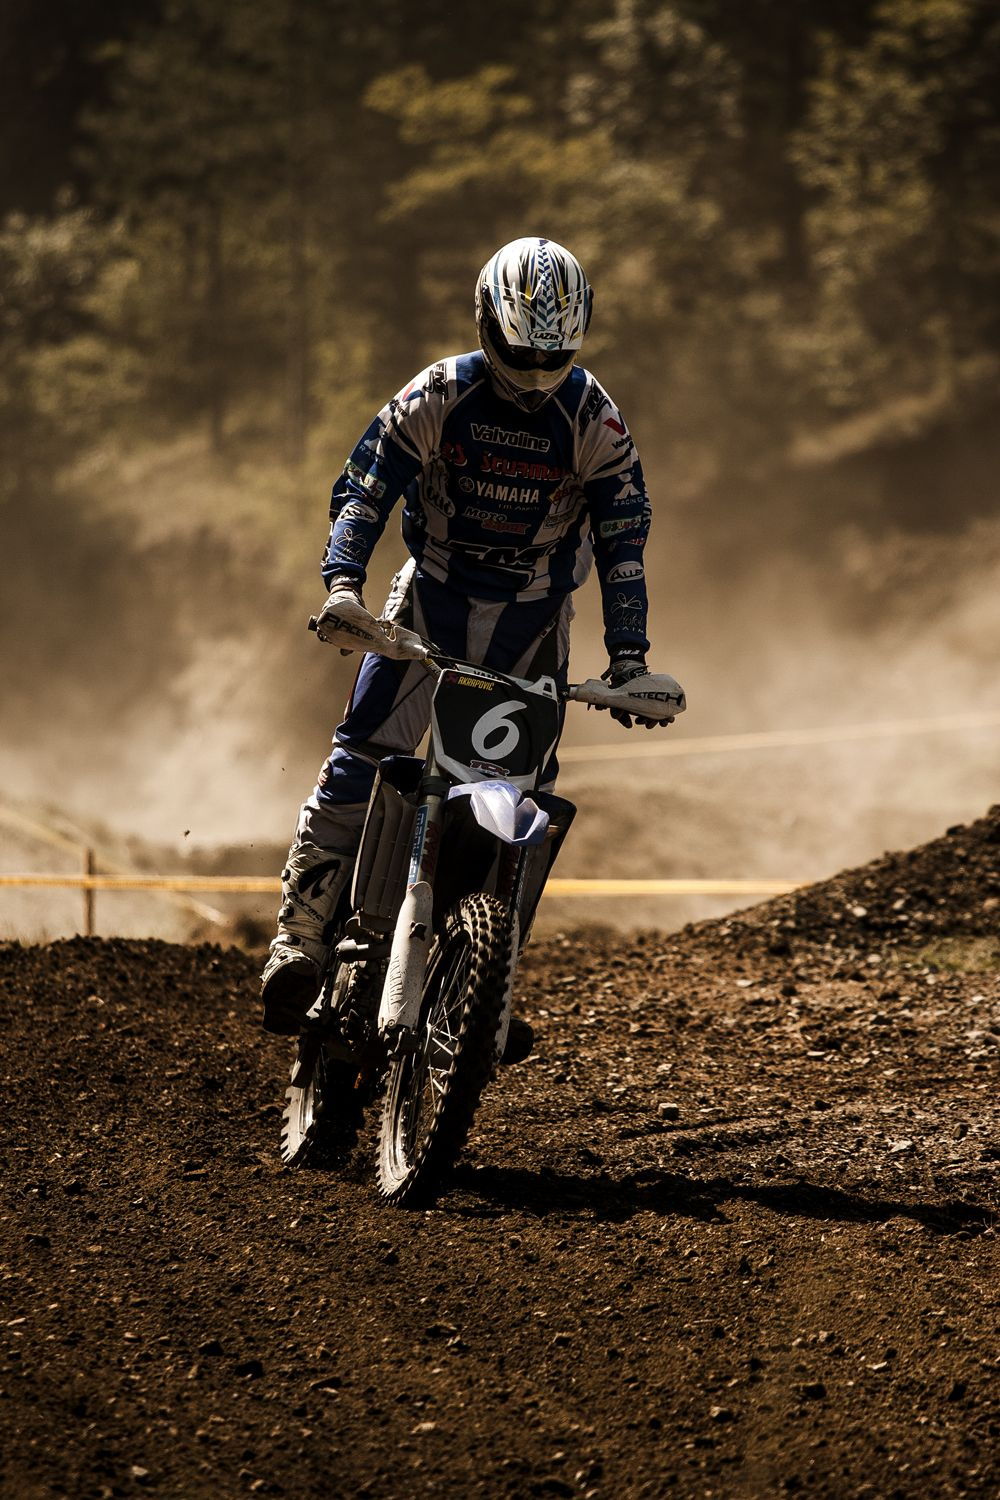 Motocross race in BRUS, Serbia. Action photo production for gobandit GmbH, action cam maker from Germany. Year 2011. Art direction by Ivo Martinovic. Photo by Ivan Masic. Post by Ivo.